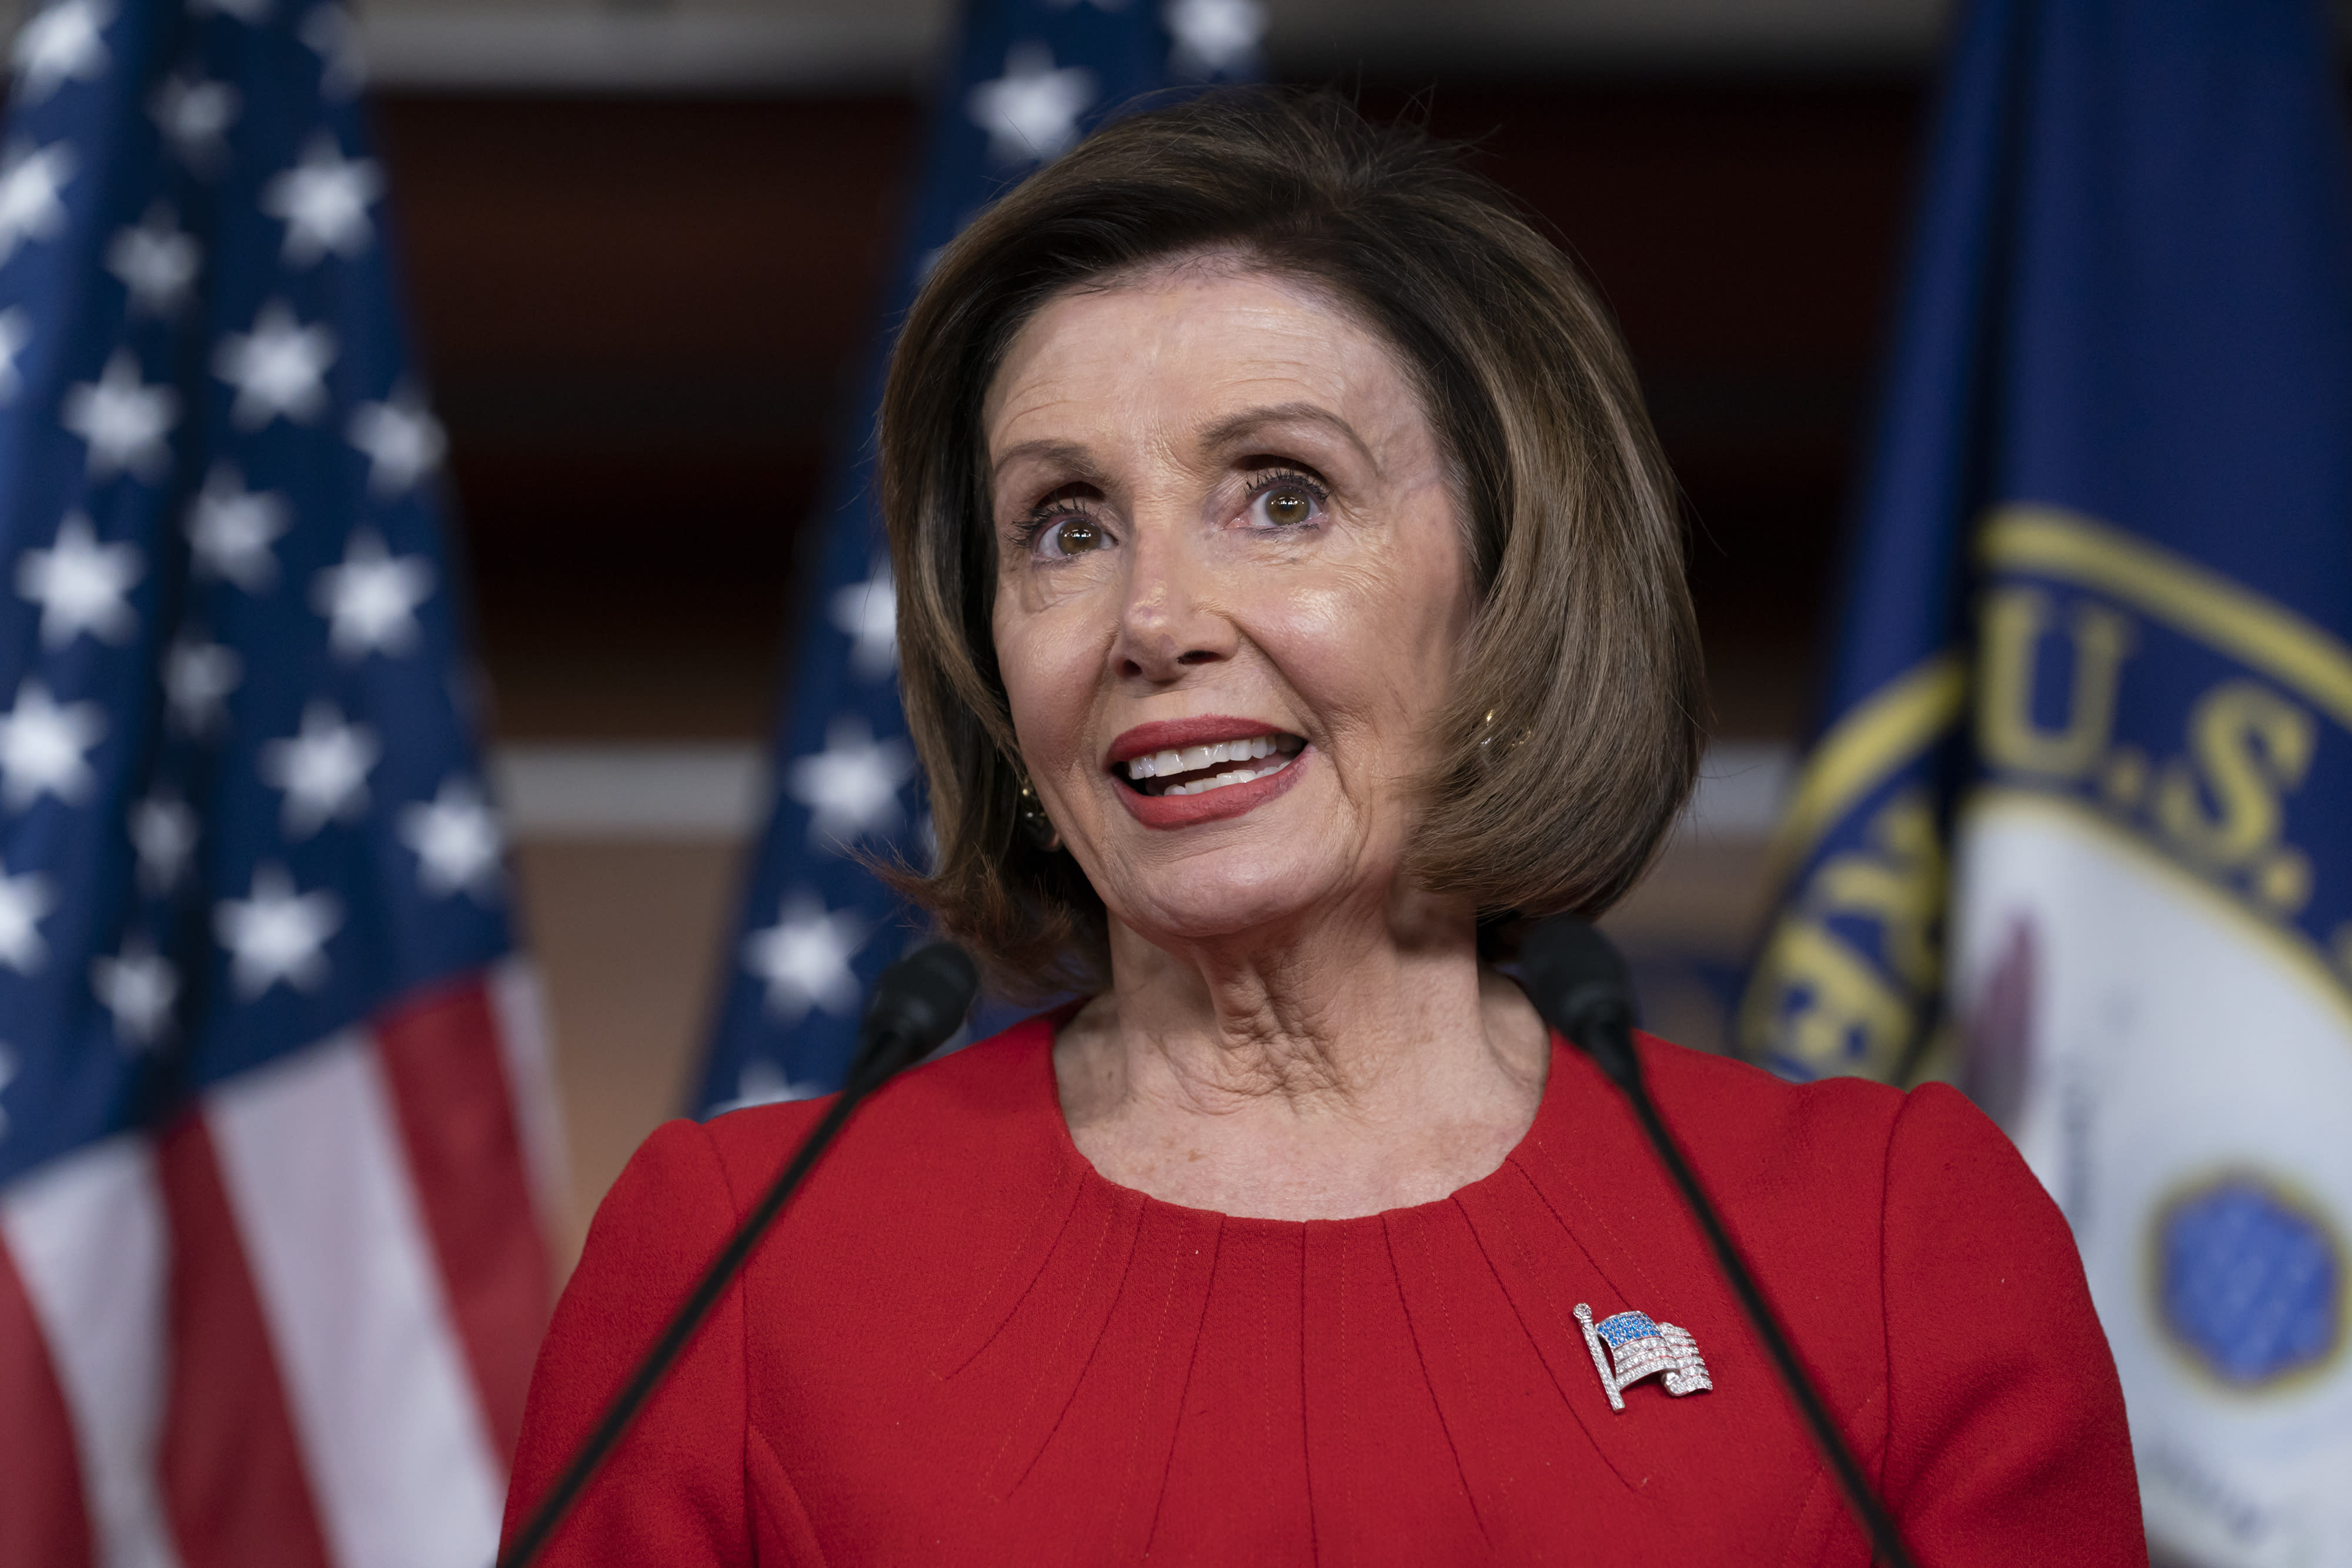 With USMCA, Dems try to prove they can pass legislation during impeachment